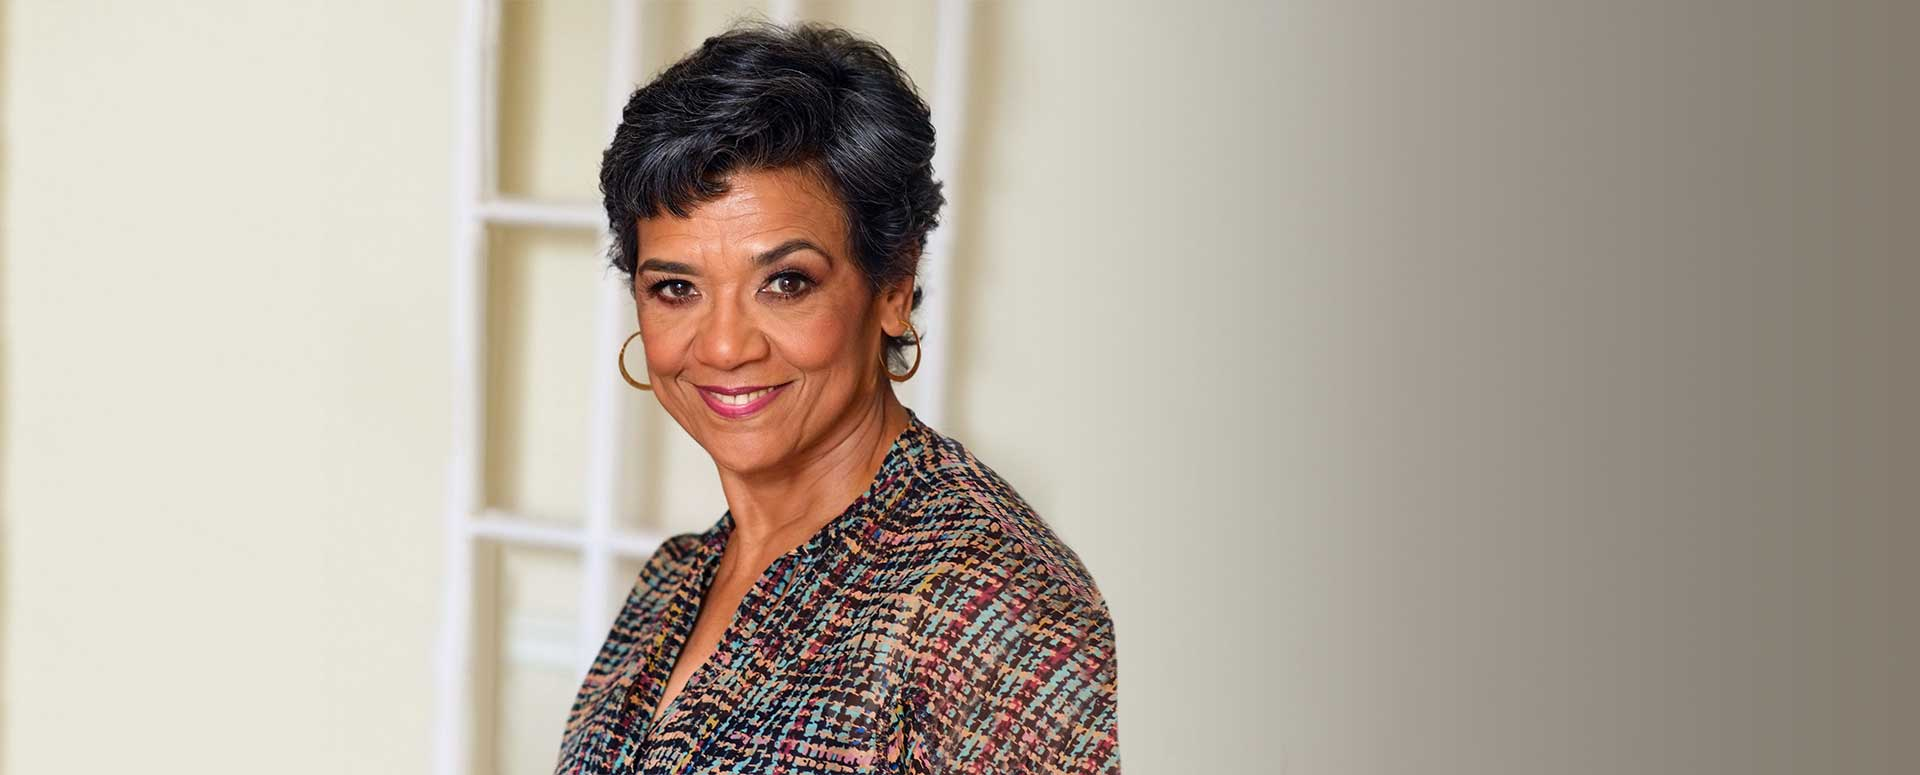 Sonia Manzano naked (34 photo), Sexy, Leaked, Selfie, lingerie 2006